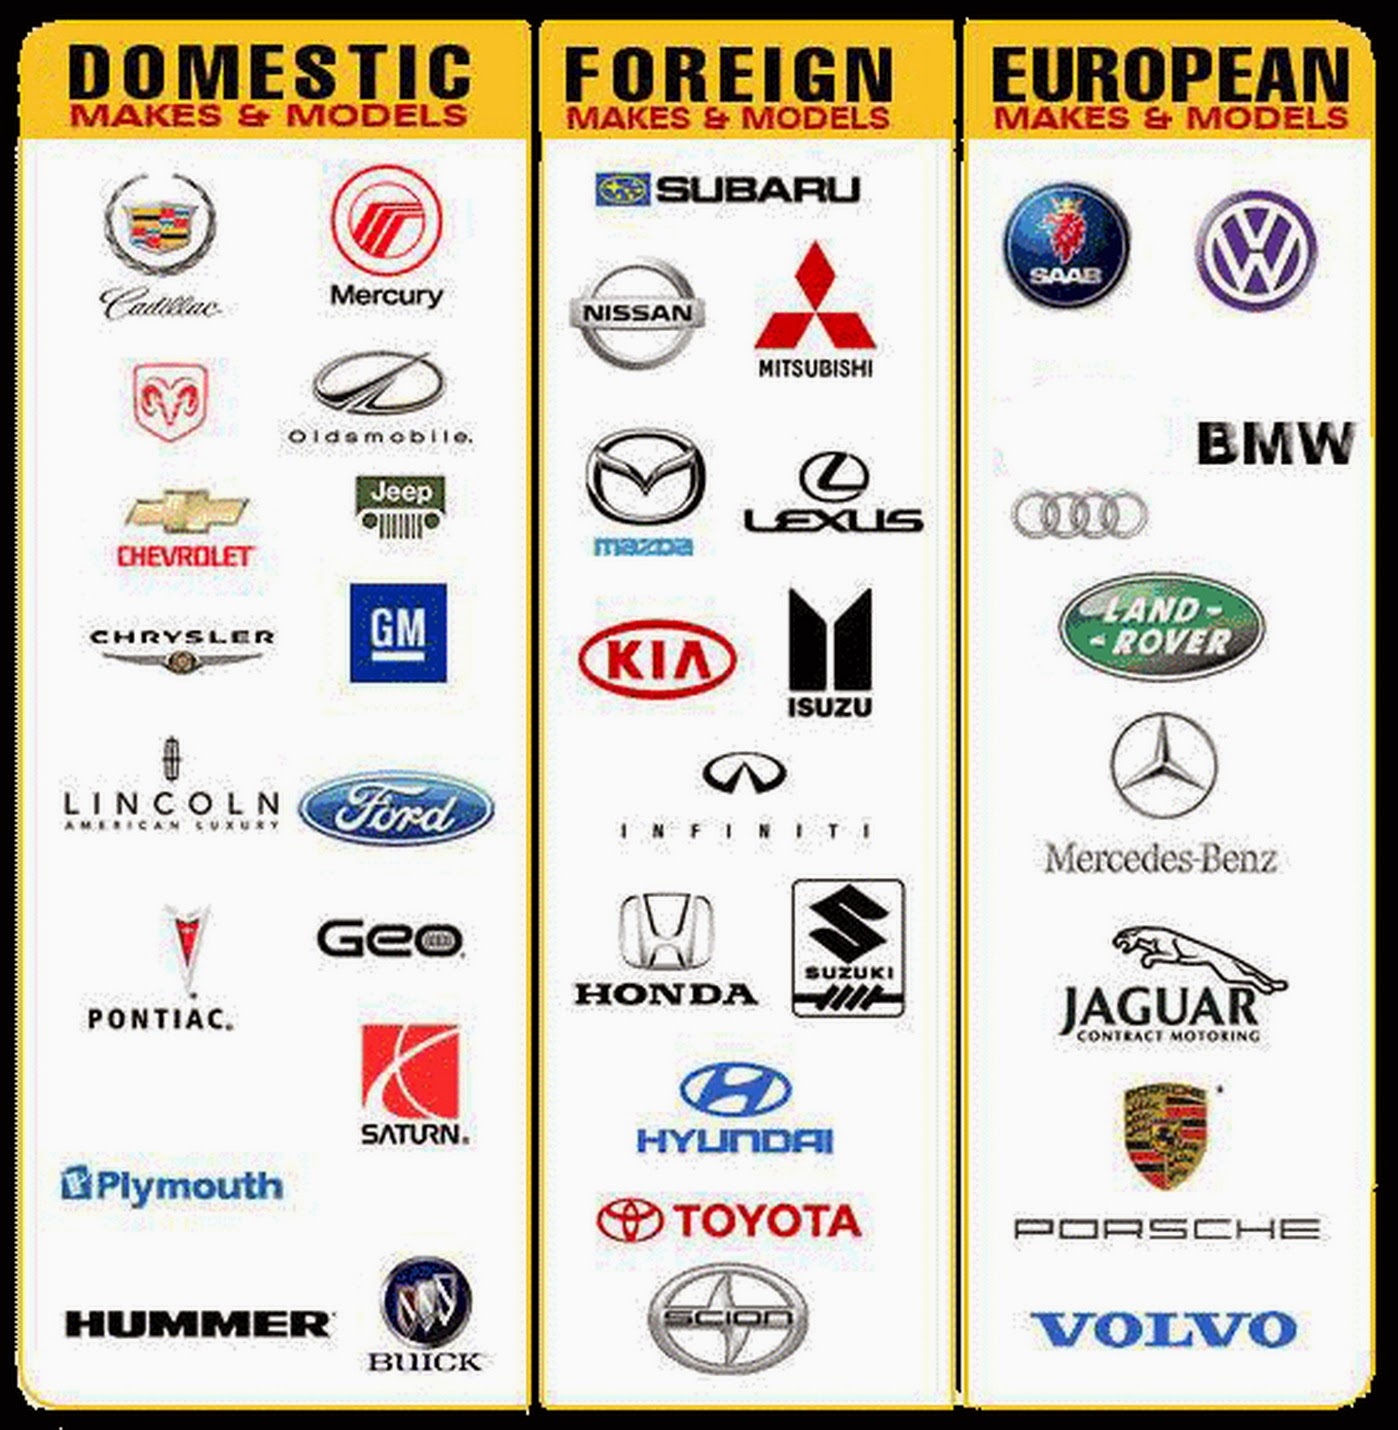 European Car Logos And Names